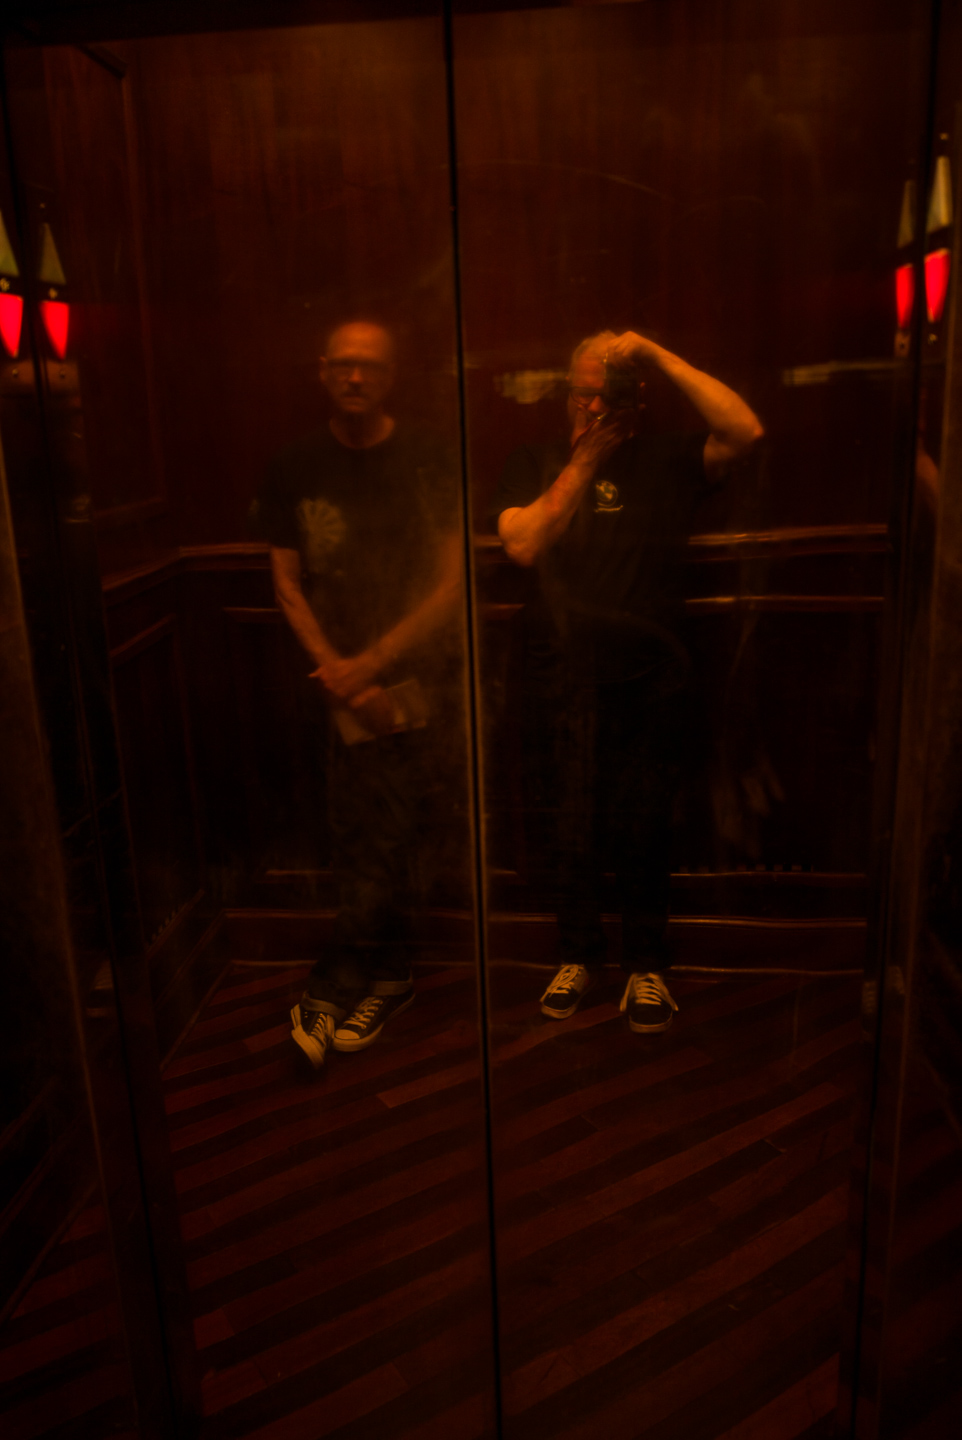 Dennis & Me in the Elevator. Johnson City, Tennessee 2015